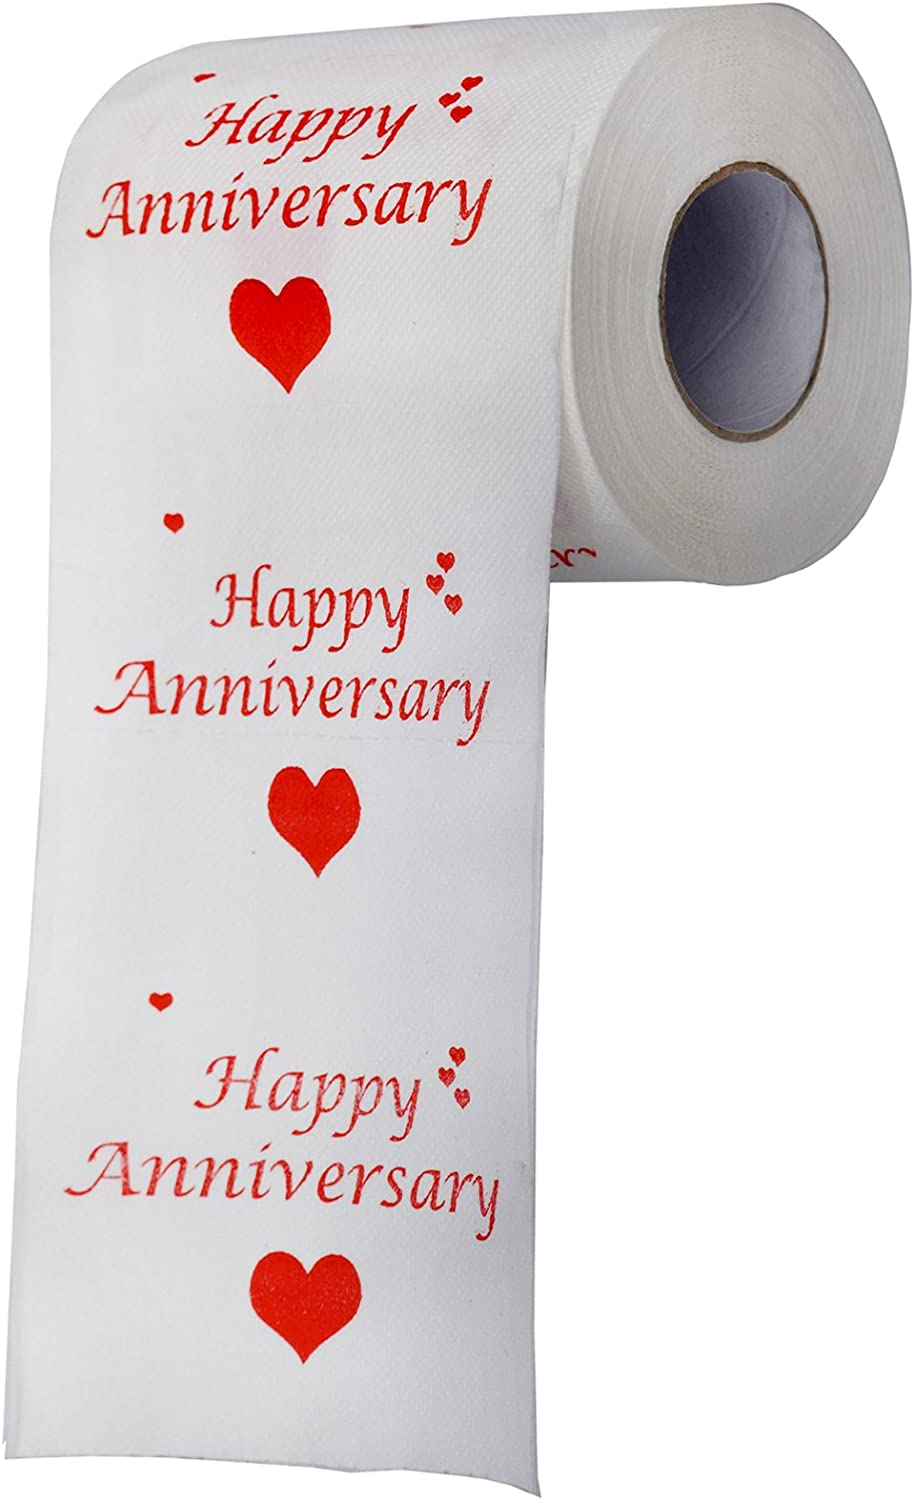 Happy Anniversary Toilet Paper Roll-Funny Gift for Him or Her Men Women.